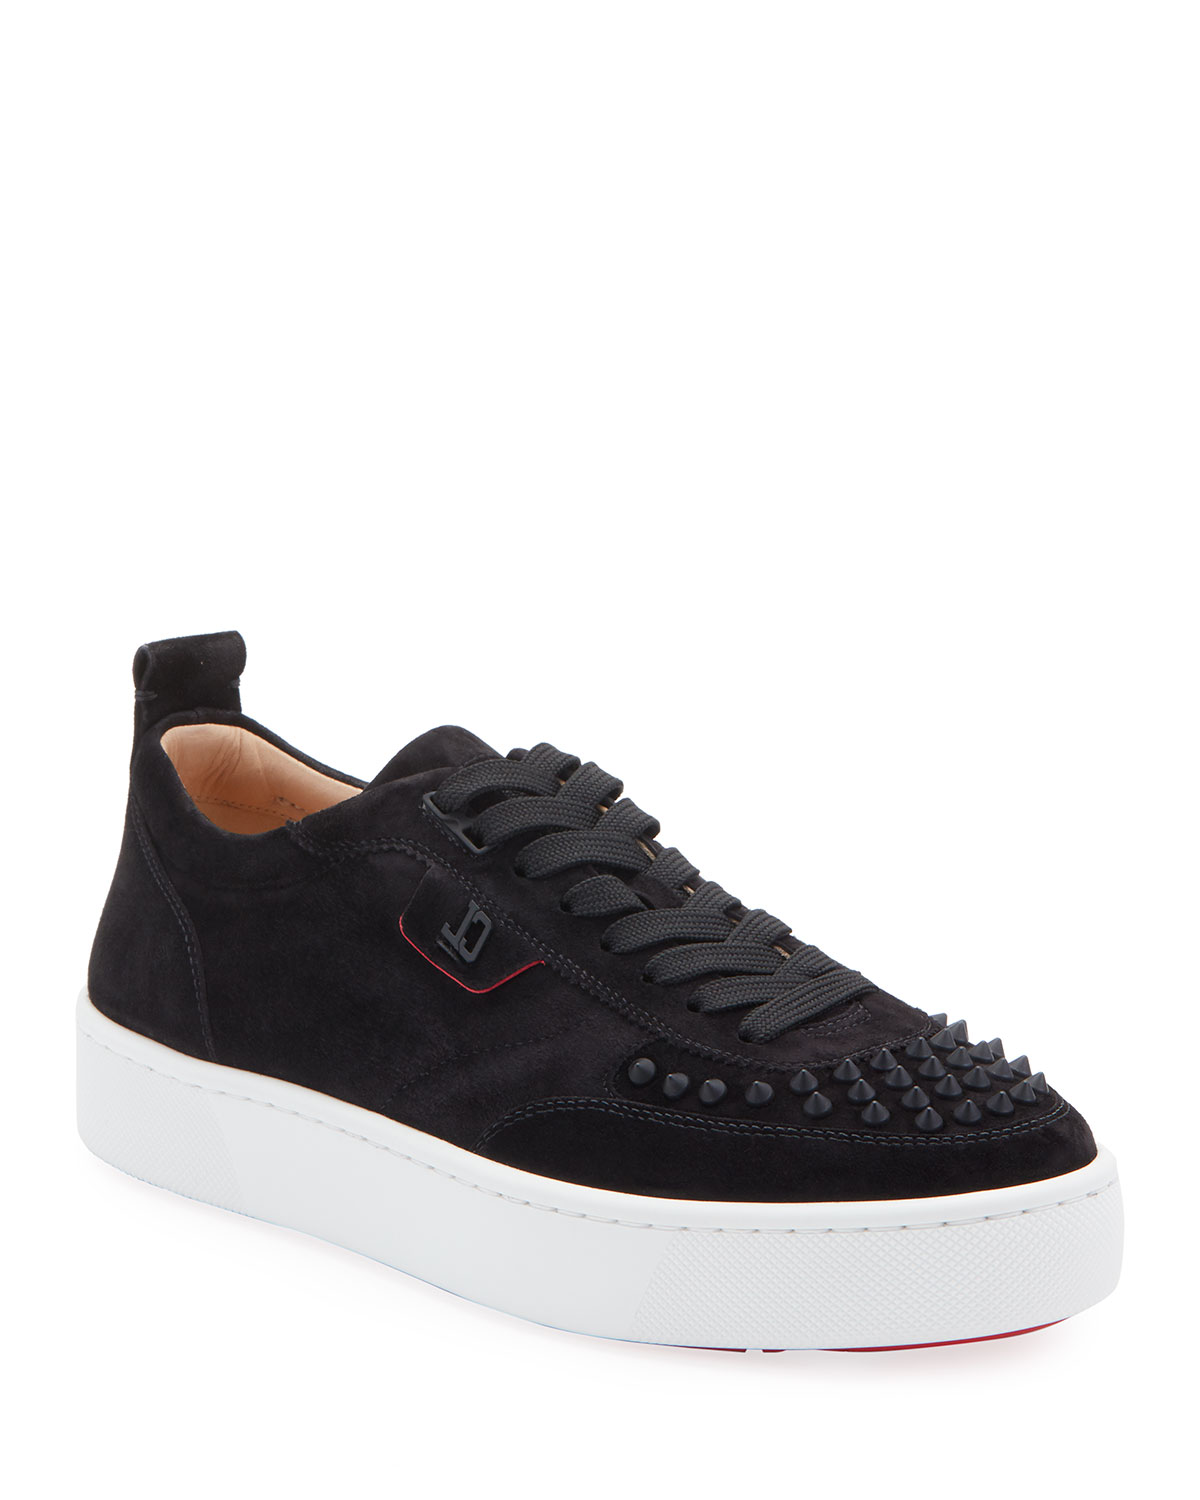 Christian Louboutin Platforms MEN'S HAPPY RUI SPIKED VELOUR PLATFORM SNEAKERS